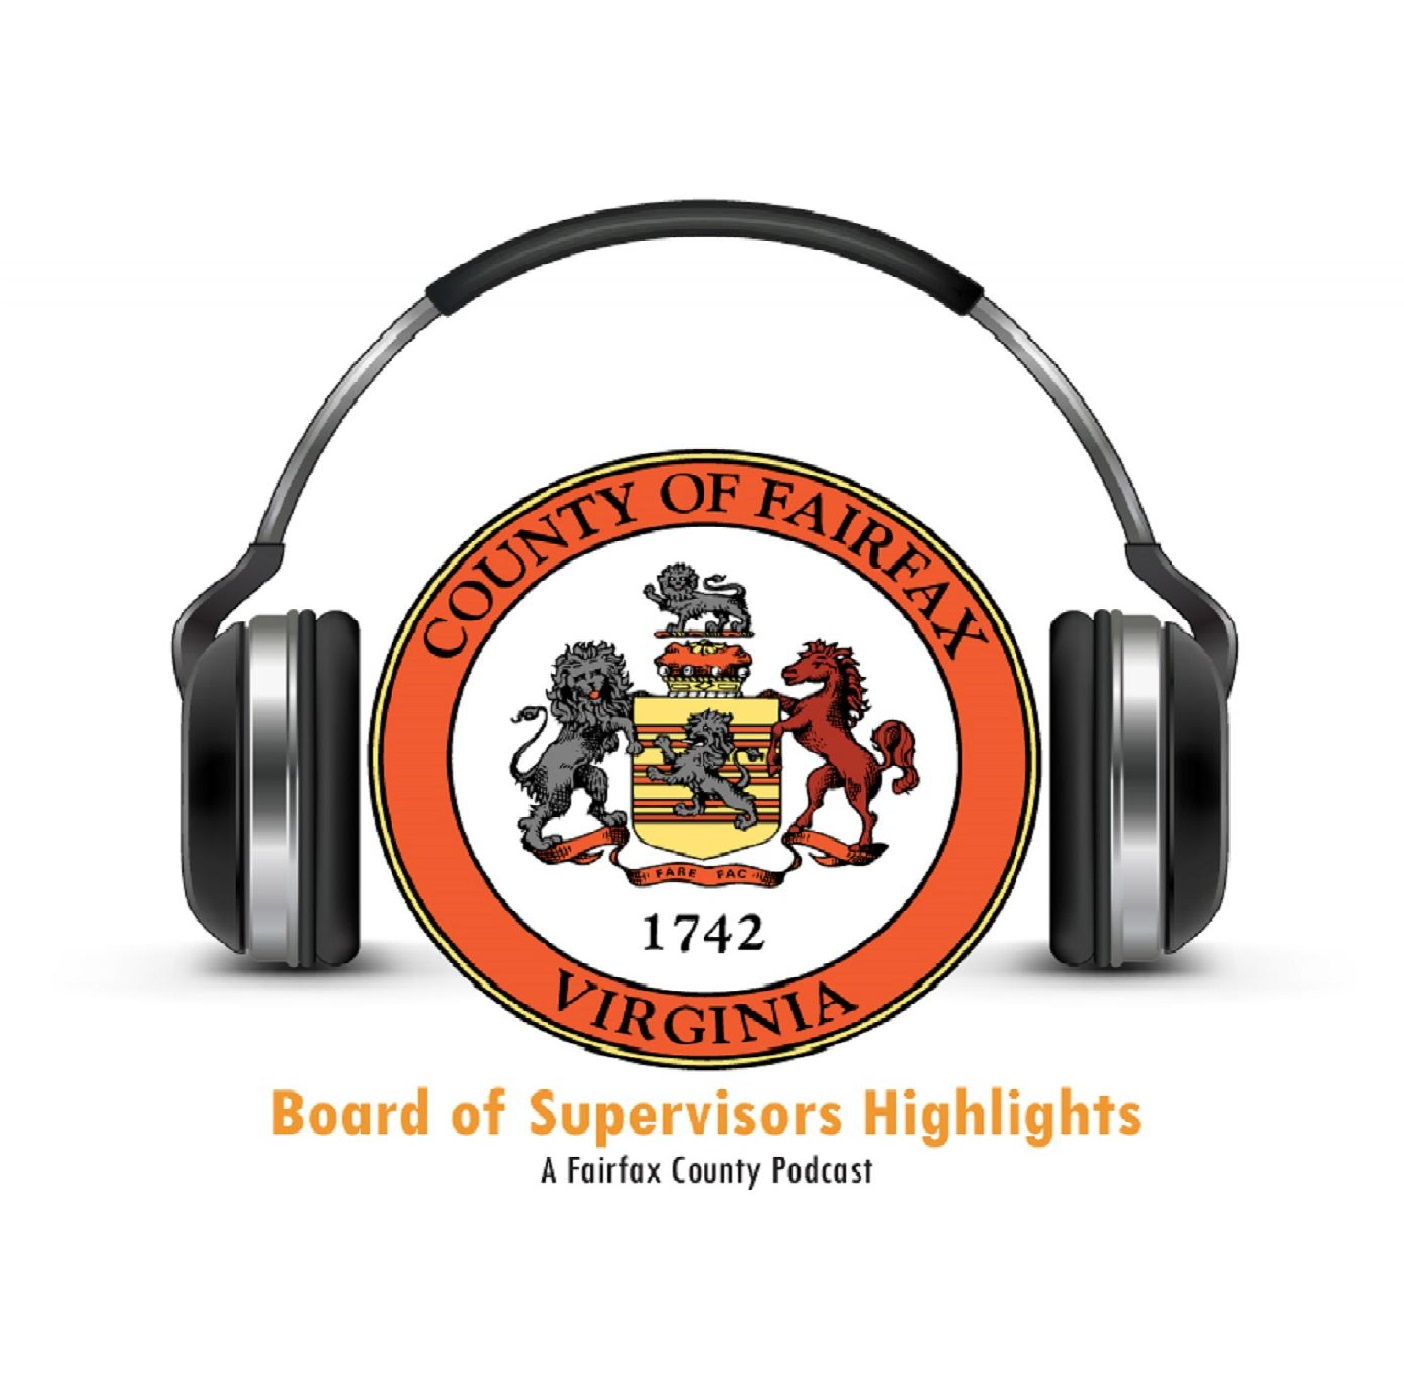 Fairfax County Board of Supervisors Meeting Highlights Podcast